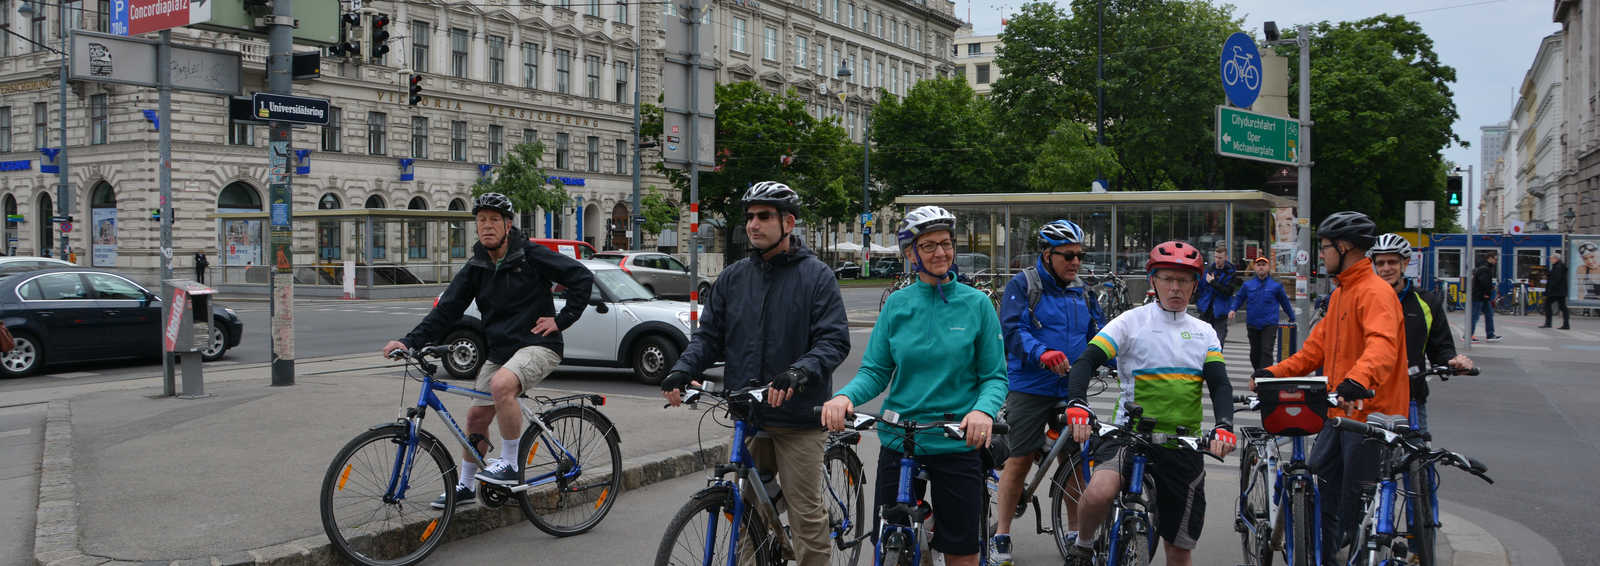 Cycling in Vienna, Austria